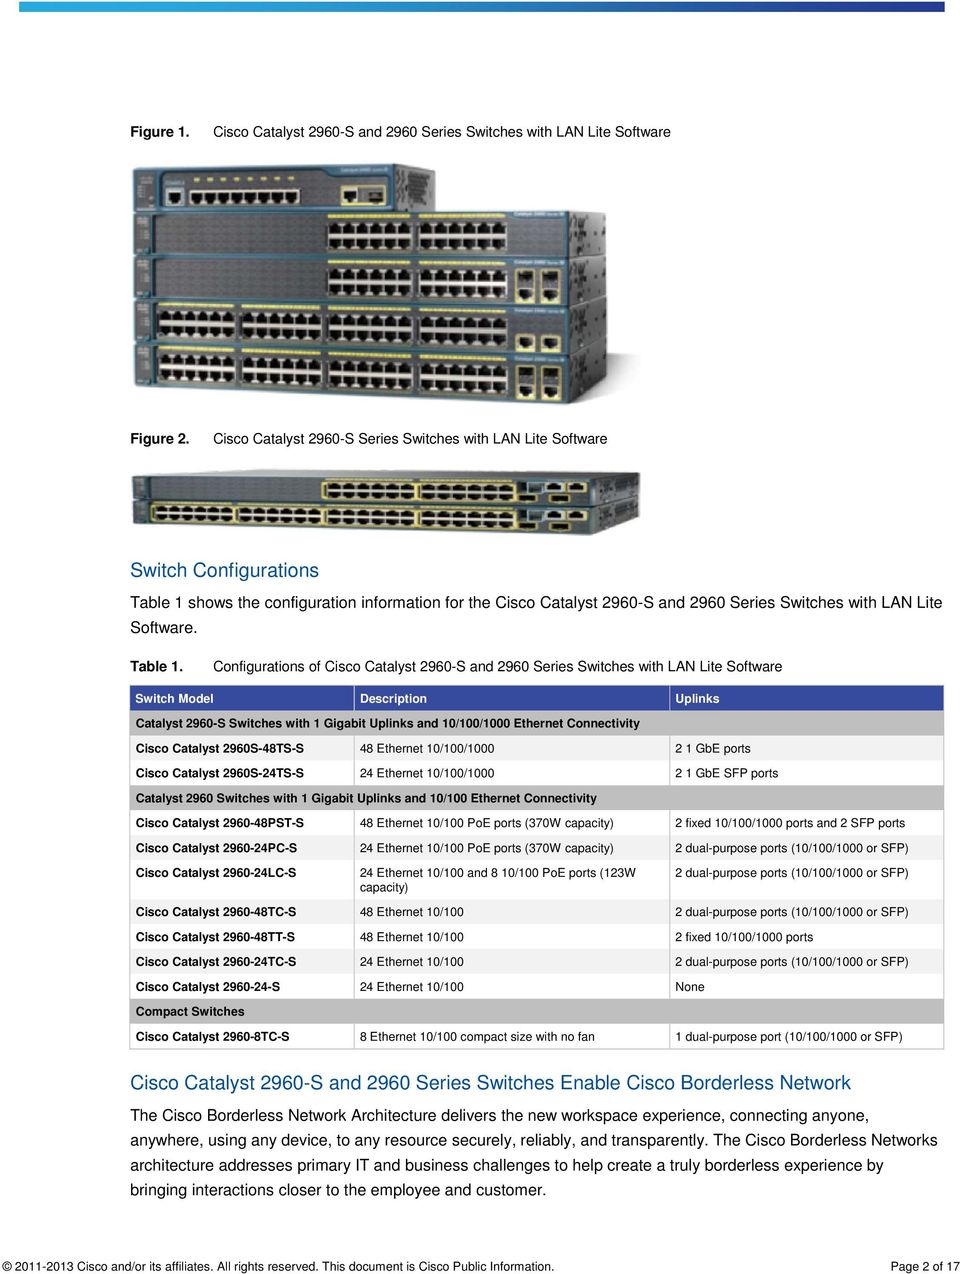 Cisco Catalyst 2960-S and 2960 Series Switches with LAN Lite